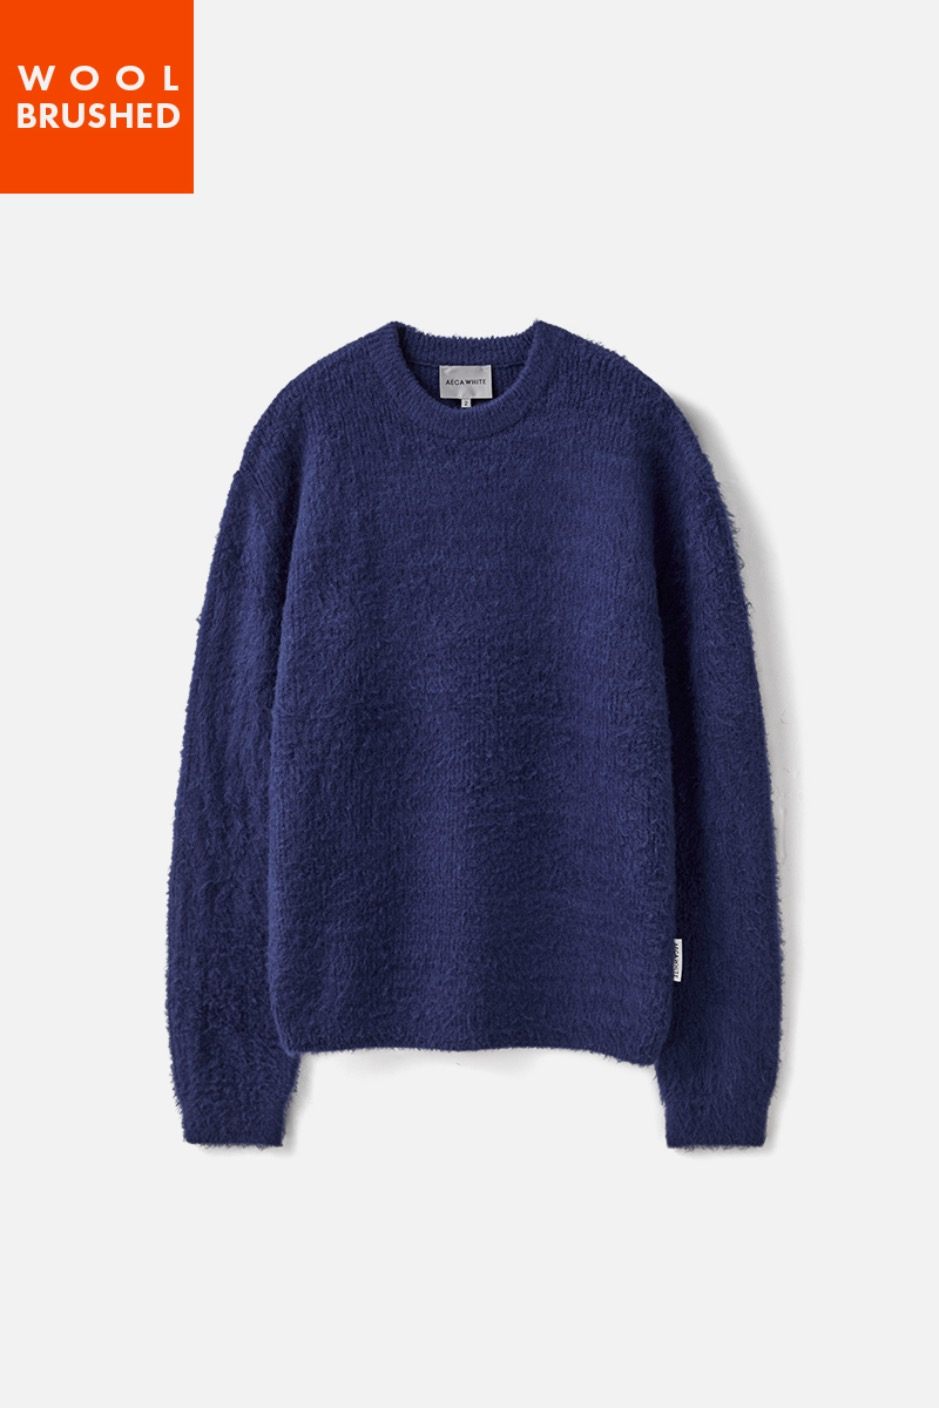 OVERSIZE WOOL BRUSHED KNIT-BLUE